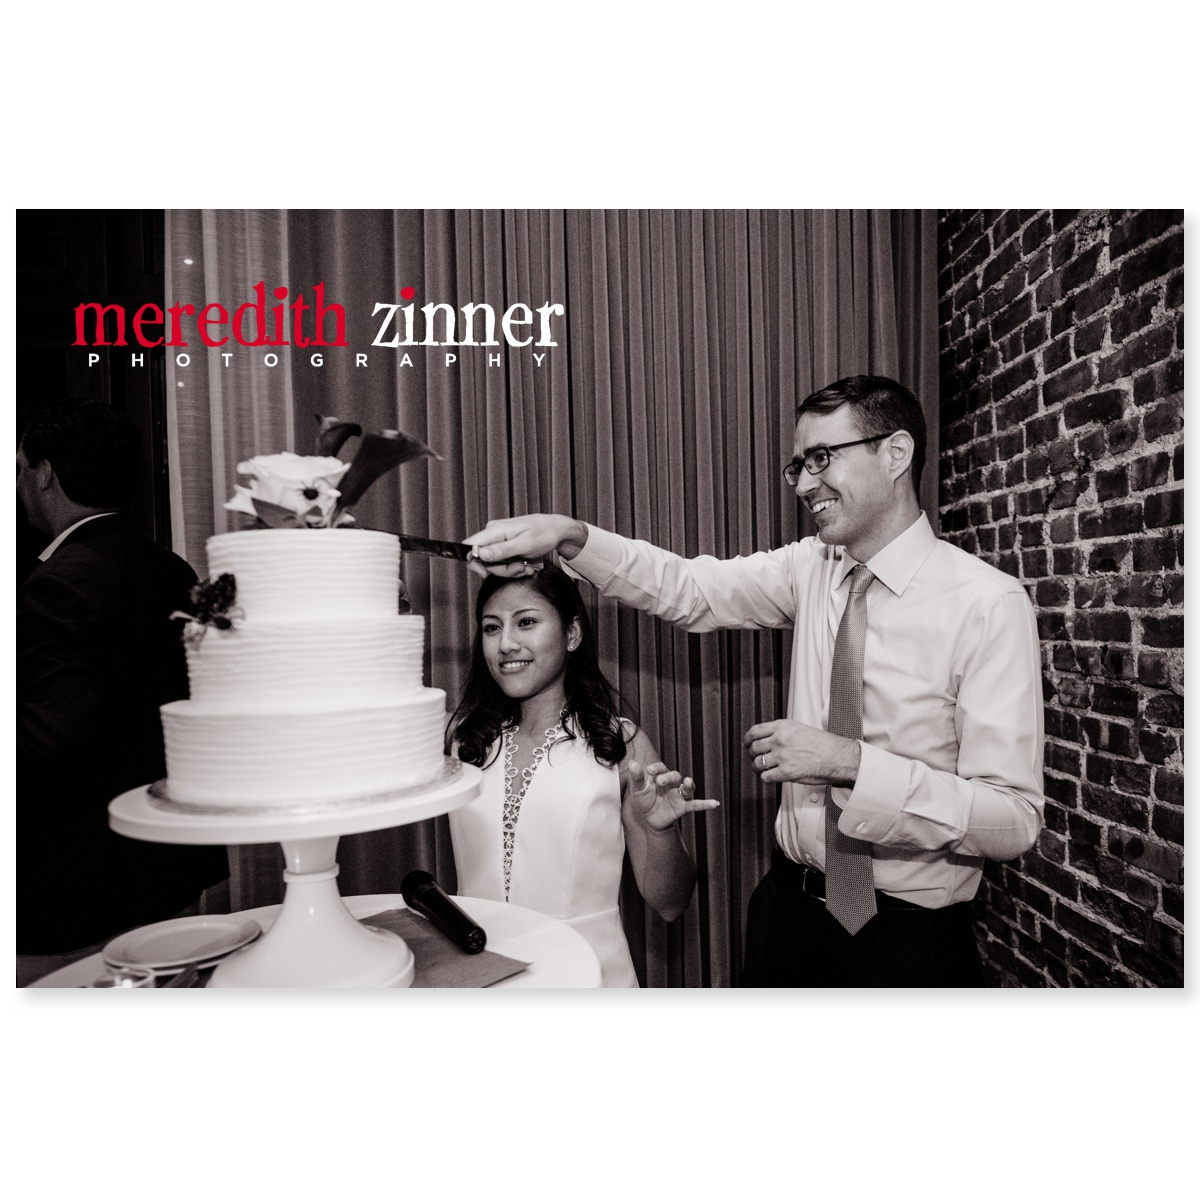 Meredith_Zinner_Photography_StilesCelebration_0309